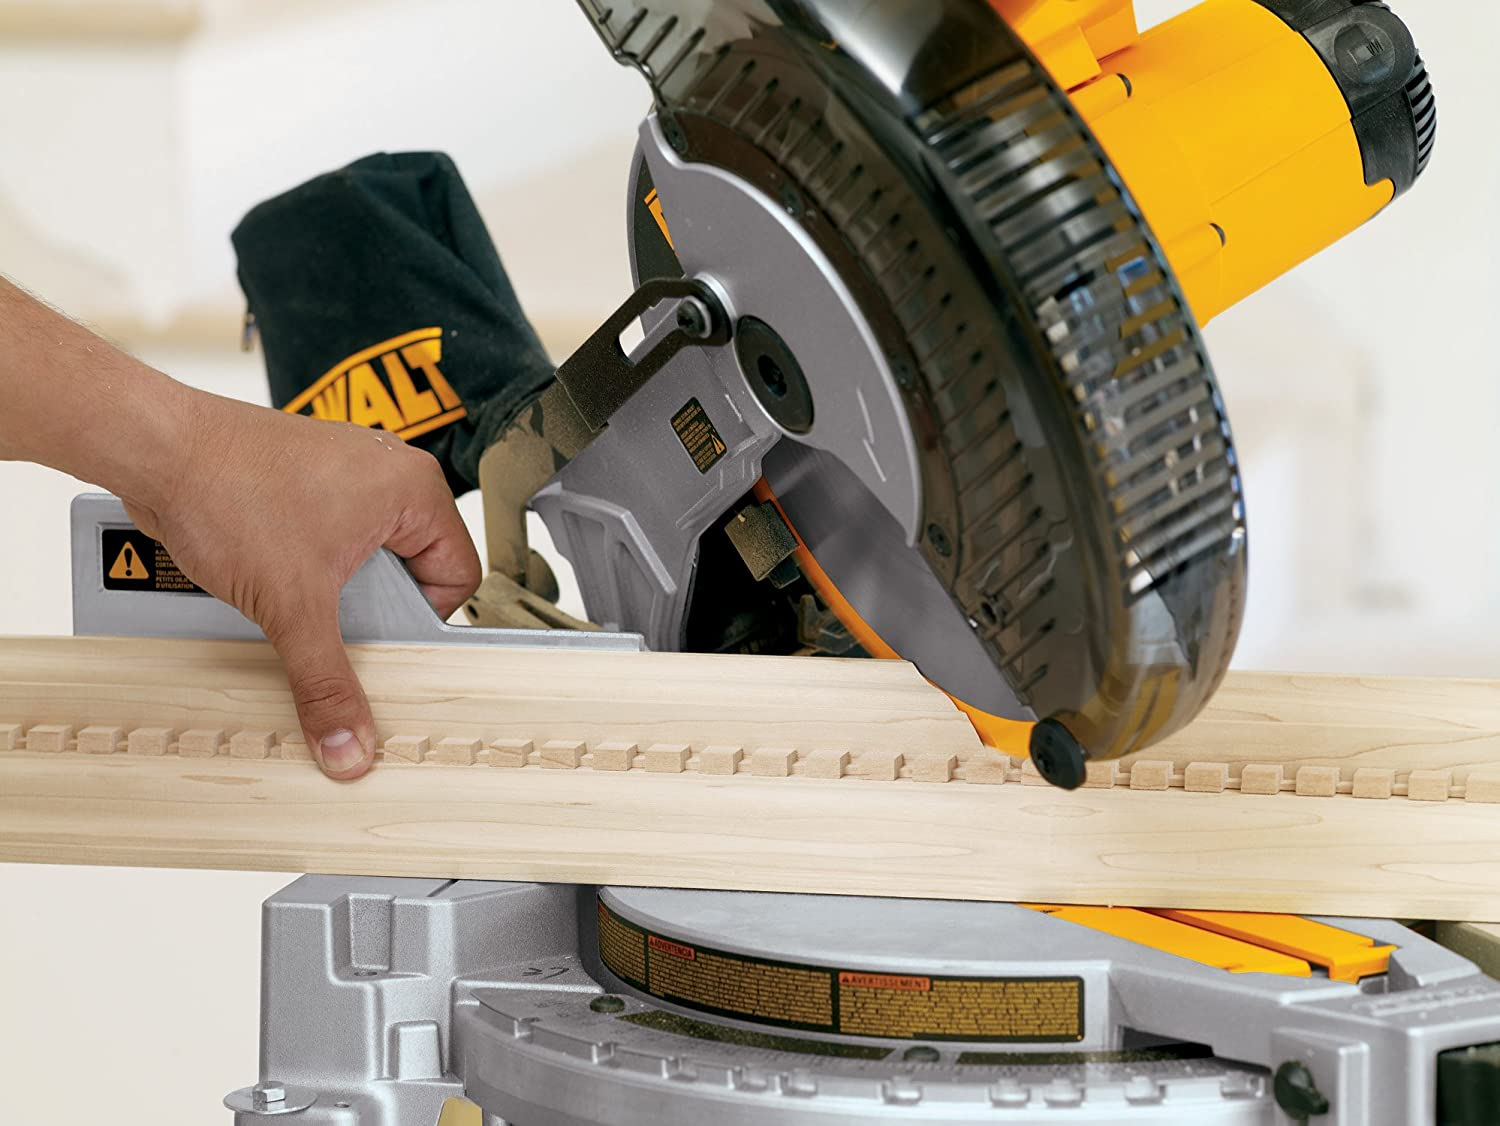 DEWALT DW713 15 Amp 10-Inch Compound Miter Saw - Power Miter Saws